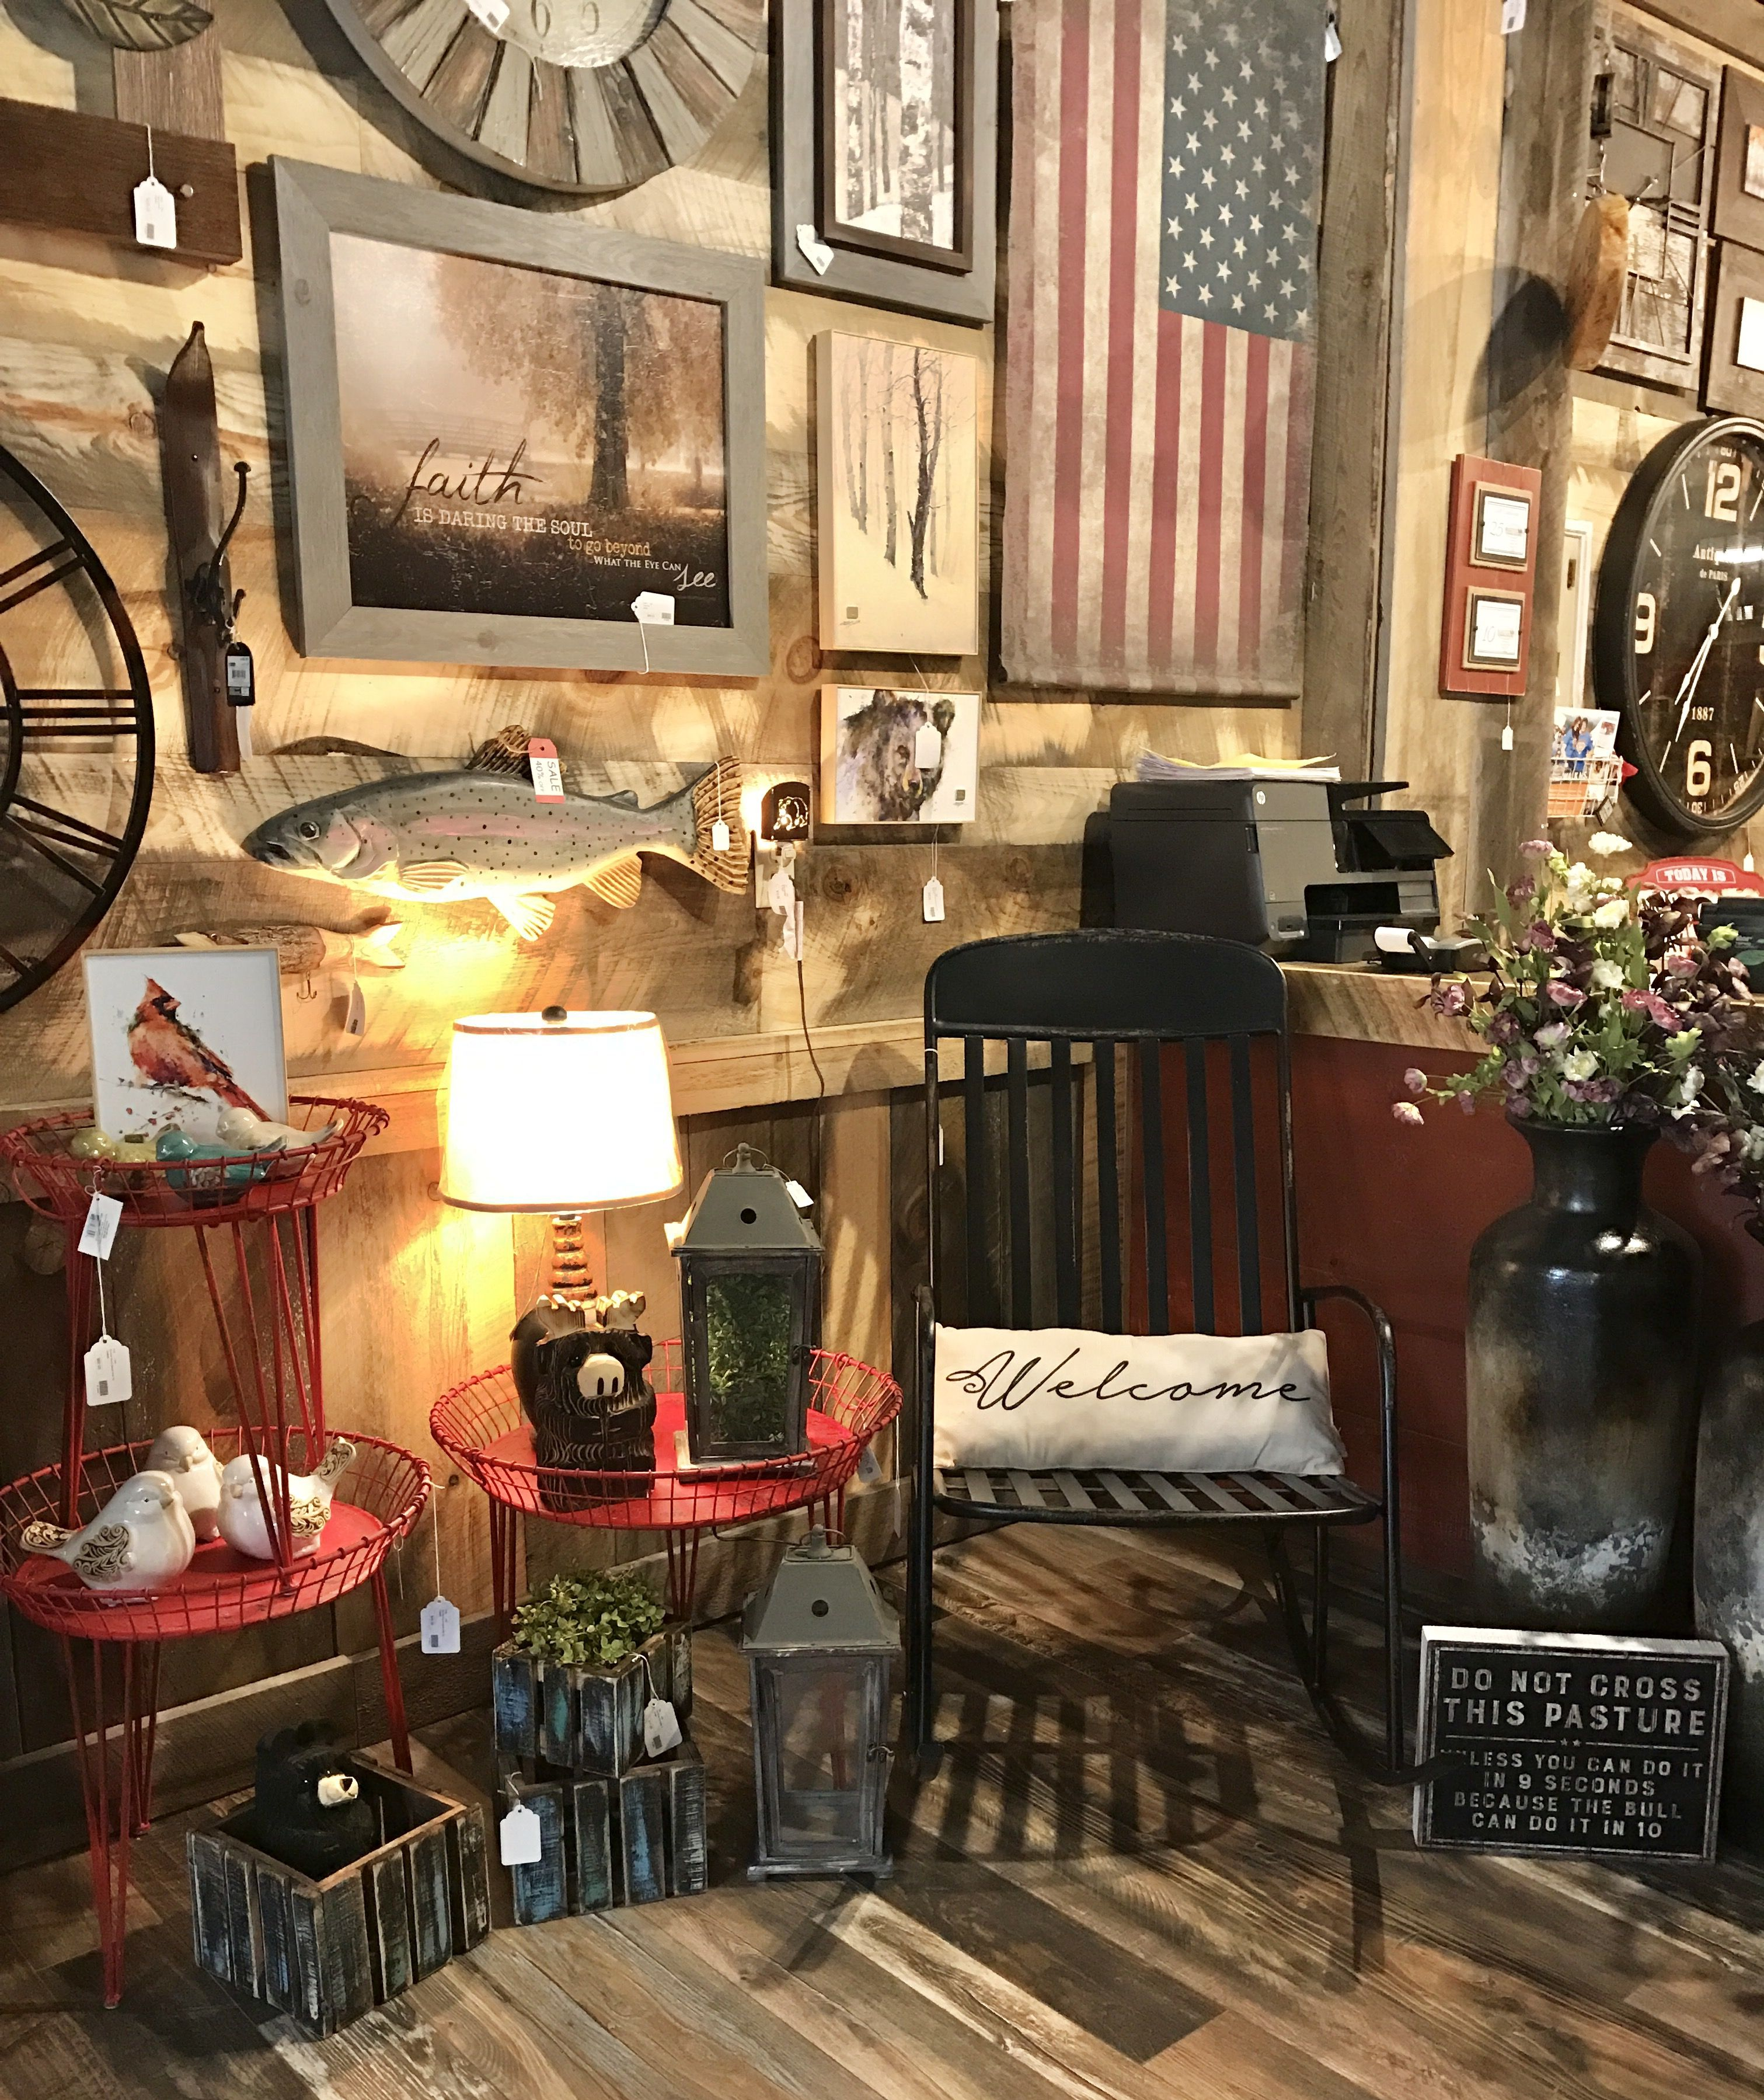 Rustic Cabin Lodge And Home Décor In